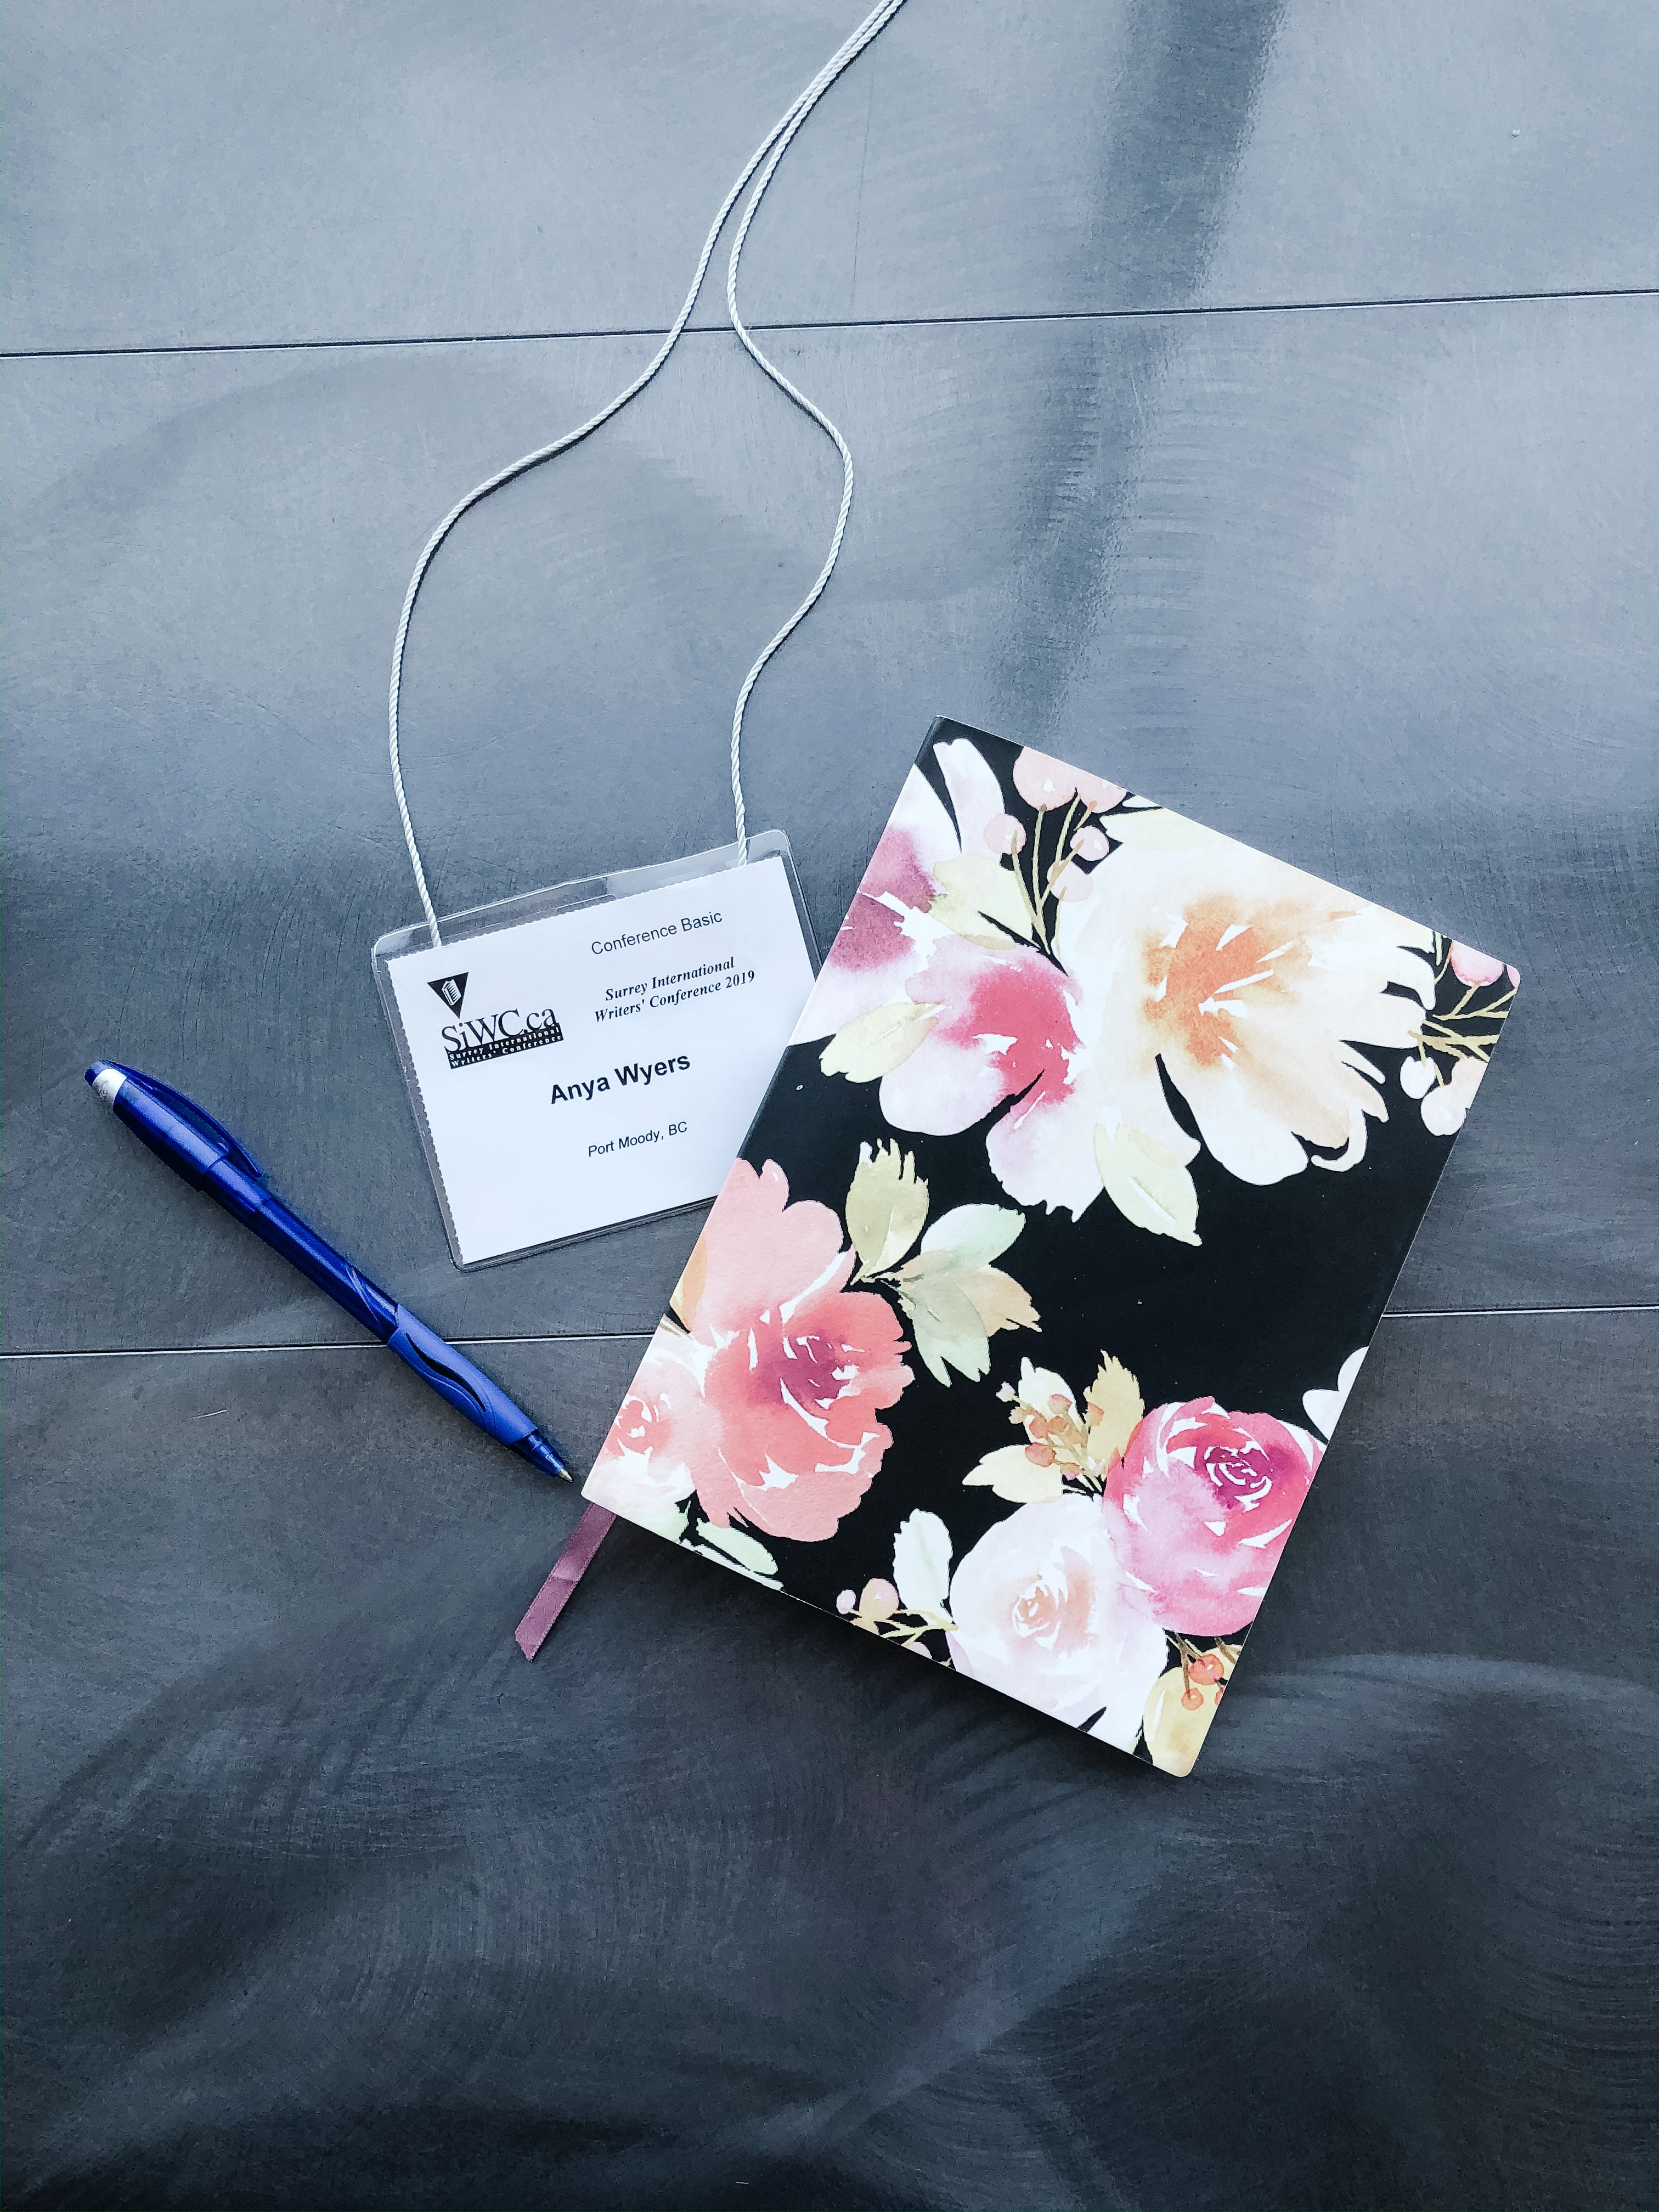 SIWC Surrey International Writer's Conference 2019 - Notebook and Nametag